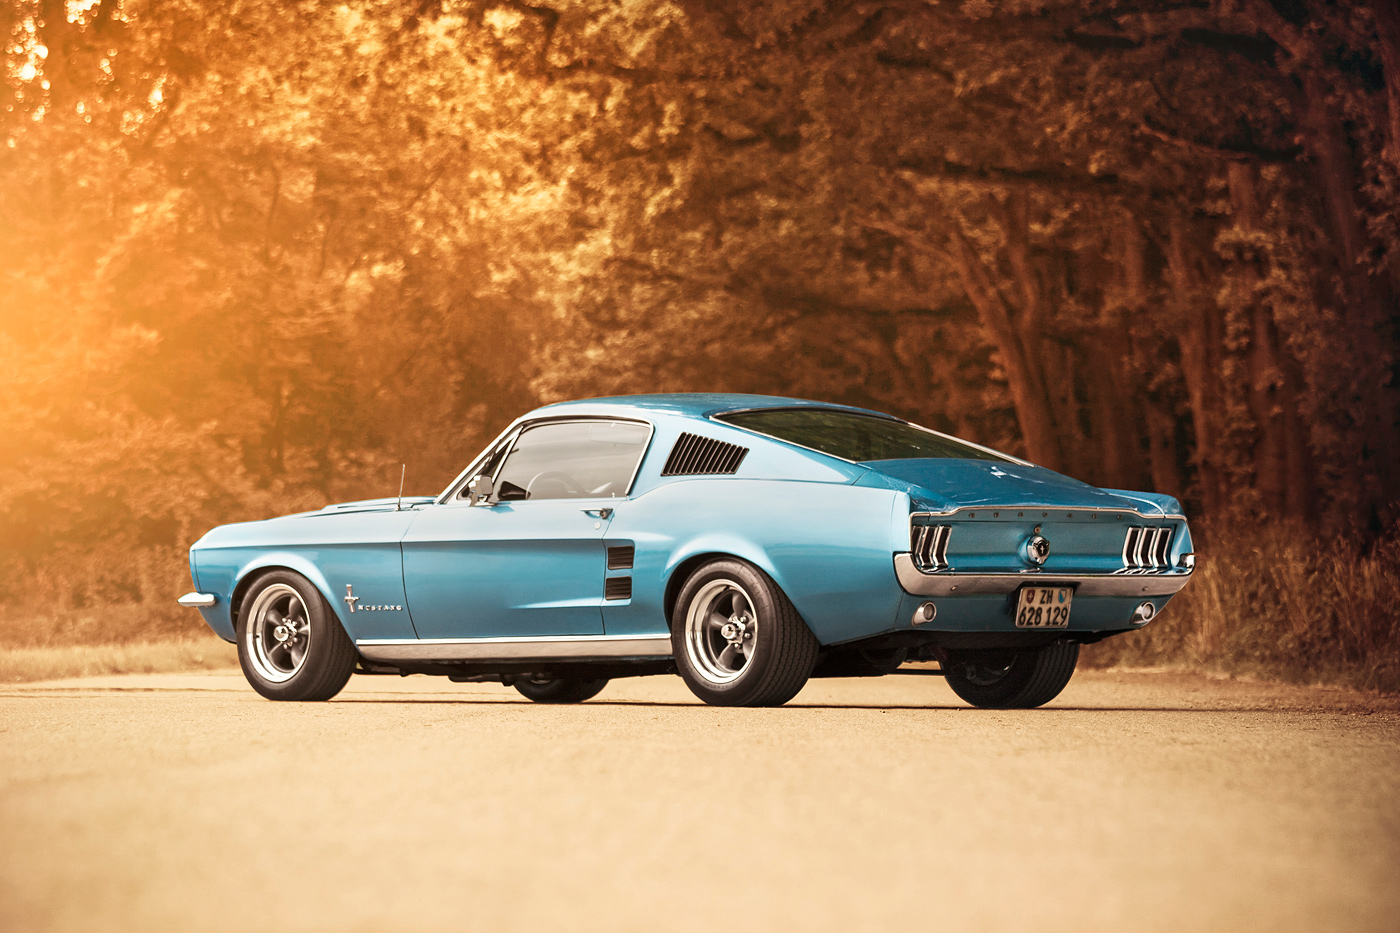 http://gerlingracing.com/wp-content/uploads/2015/01/projects-67-Ford-mustang-fastback-1967_17.jpg